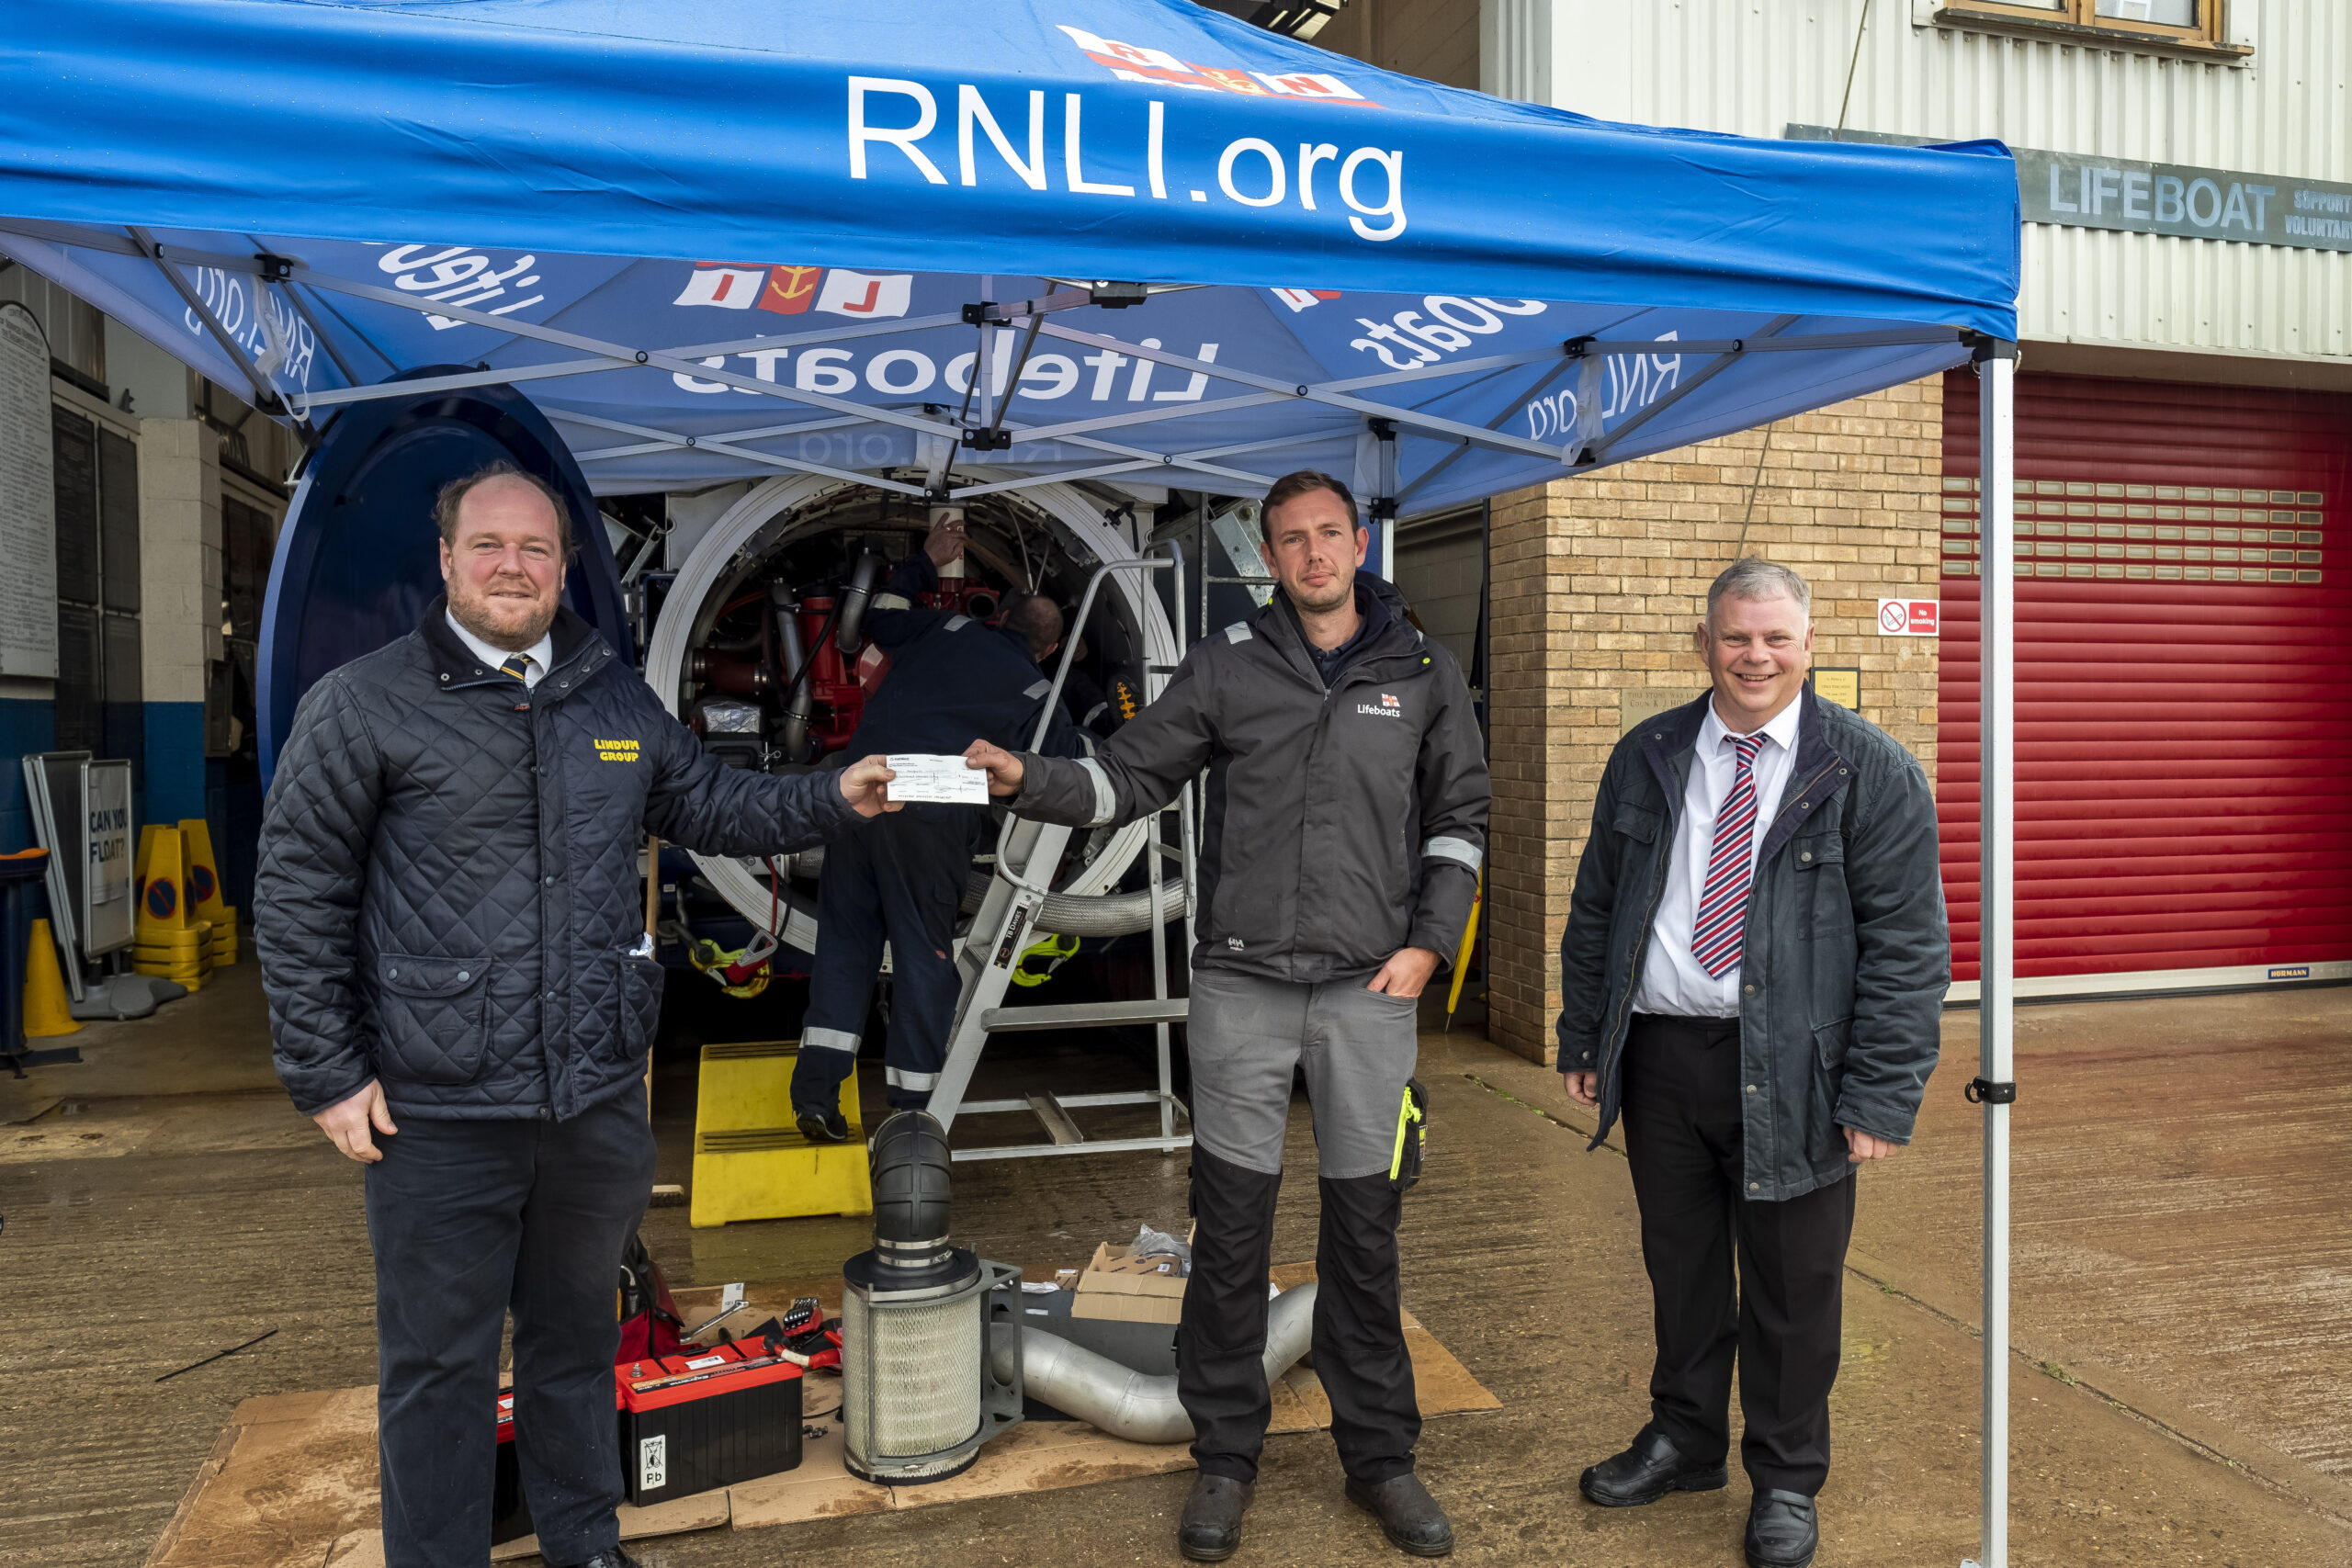 Lindum launch lifeboat support